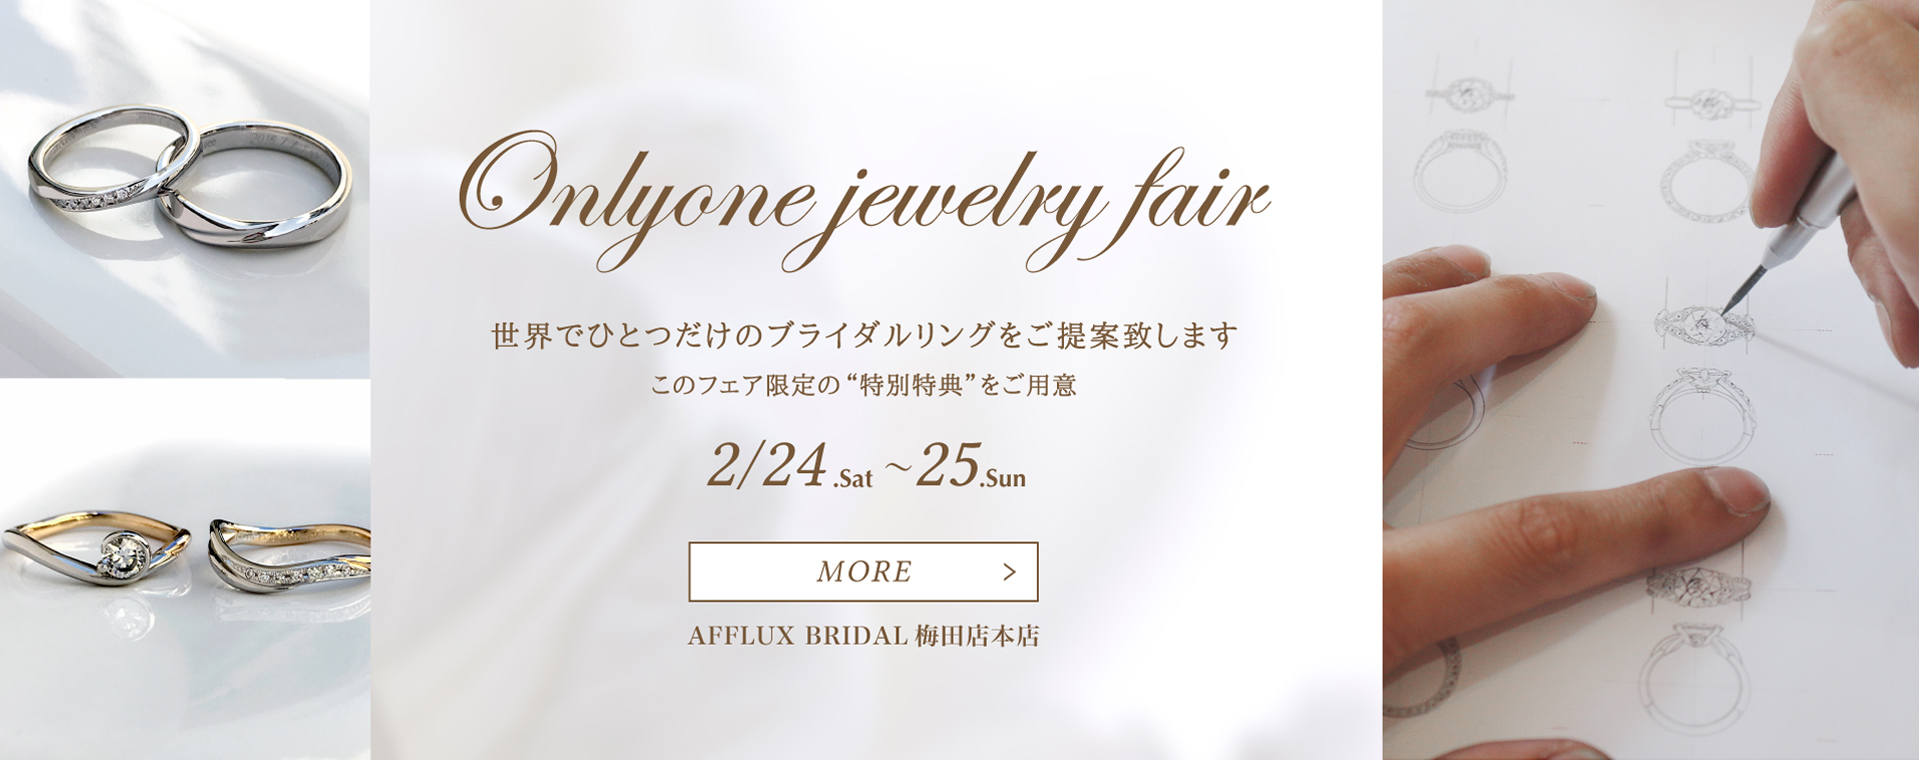 Onlyone jewelry fair 2018.2/24.Sat~25.Sun